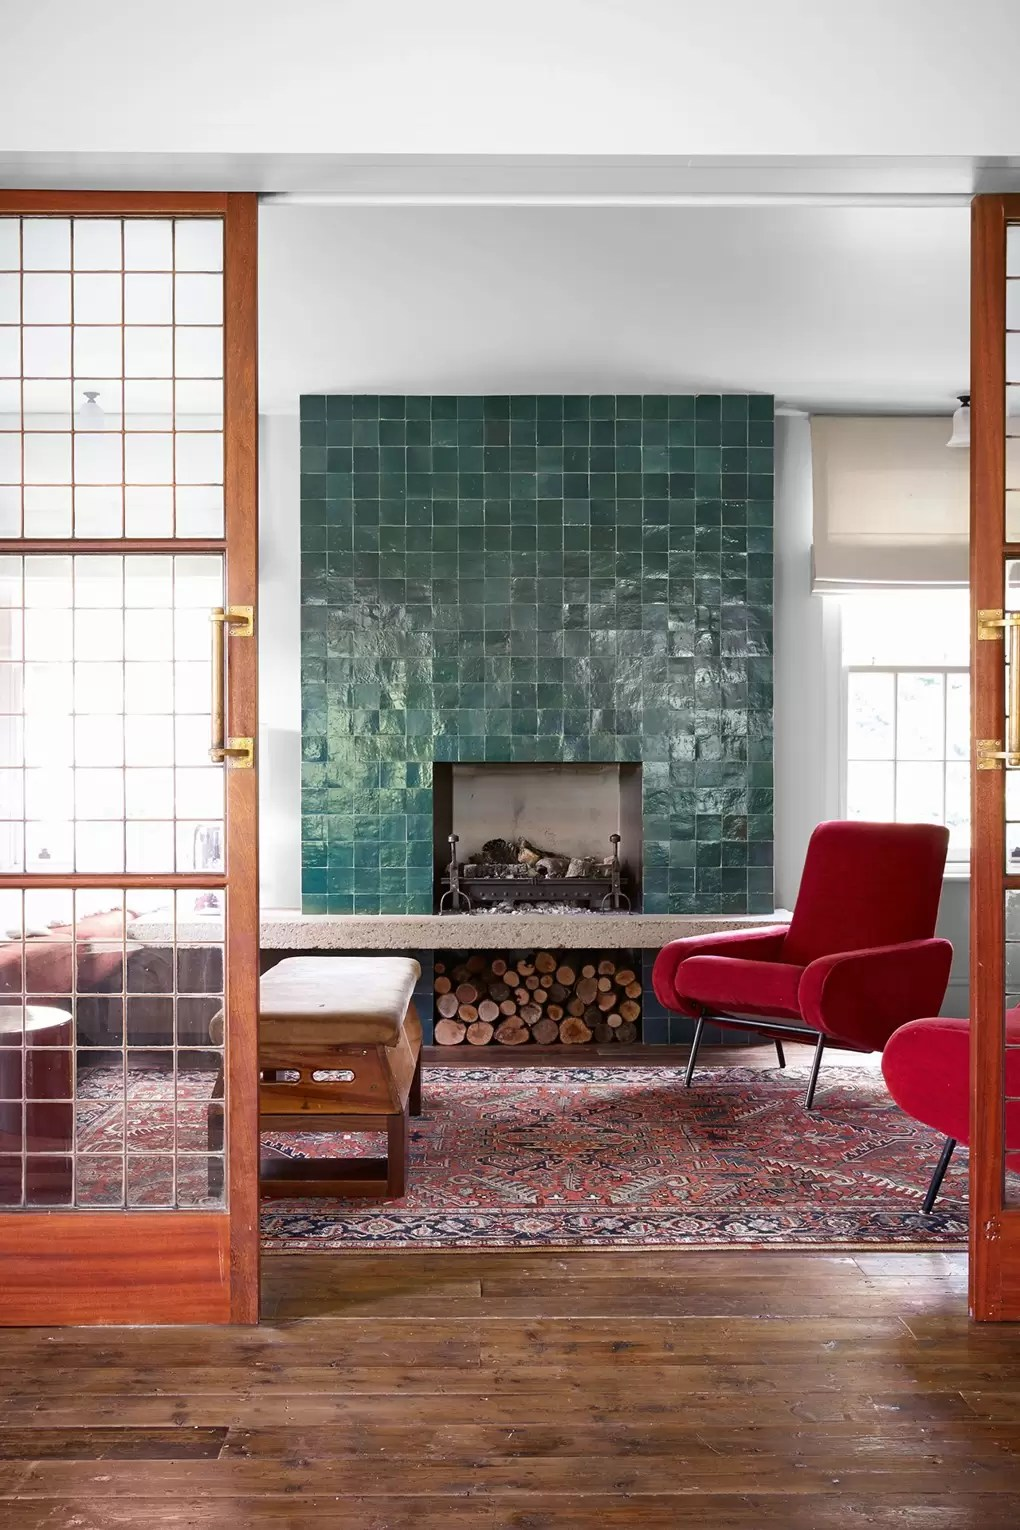 Emery Et Cie Zellige Tiles Ideas For Using Them Inspired By Hermes House